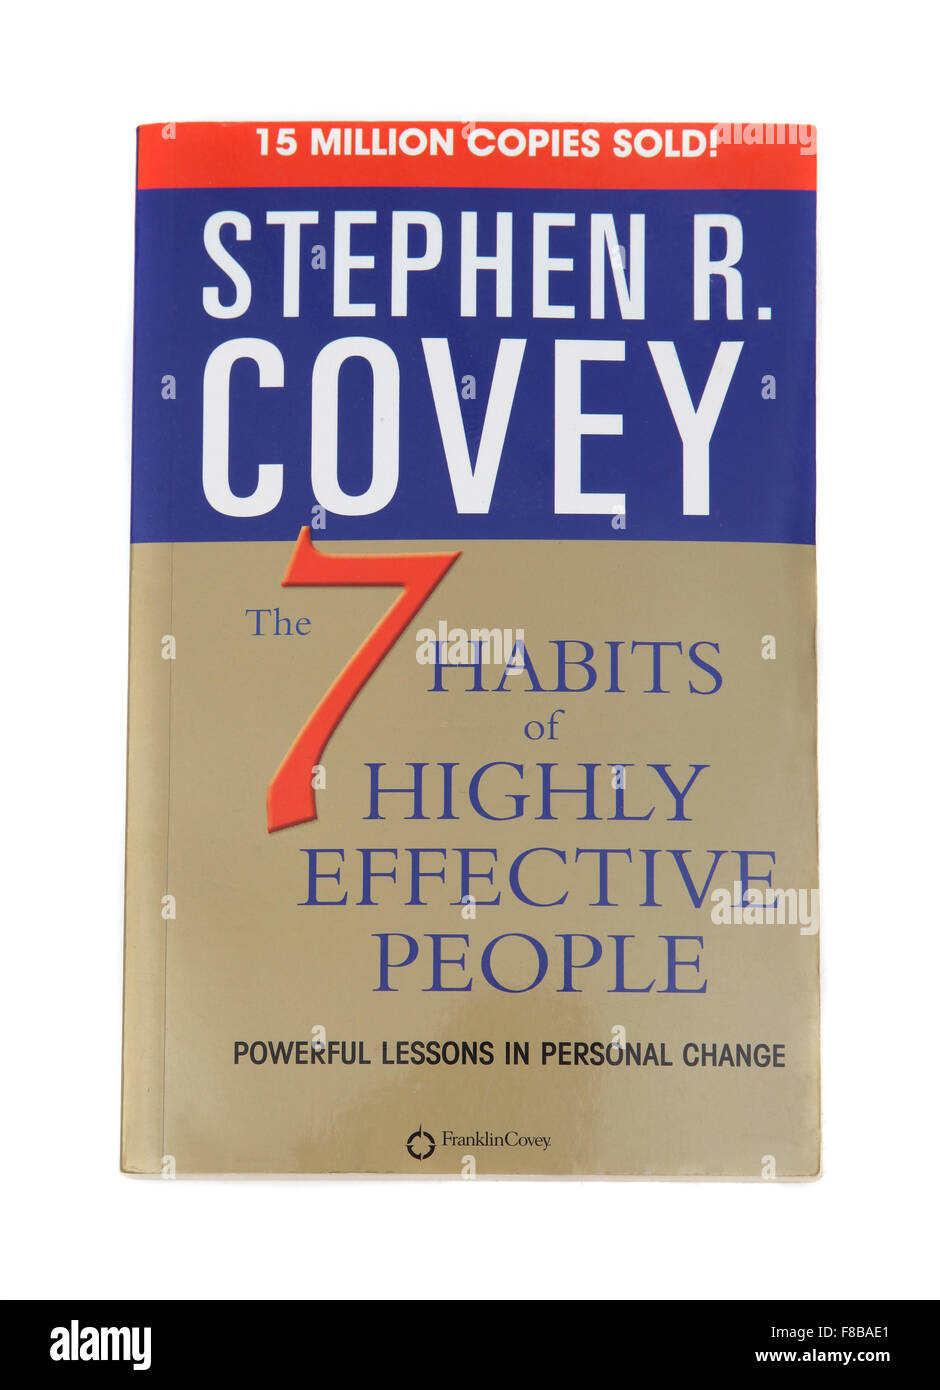 The book - The 7 Habits of Highly Effective People by Stephen Covey. - Stock Image